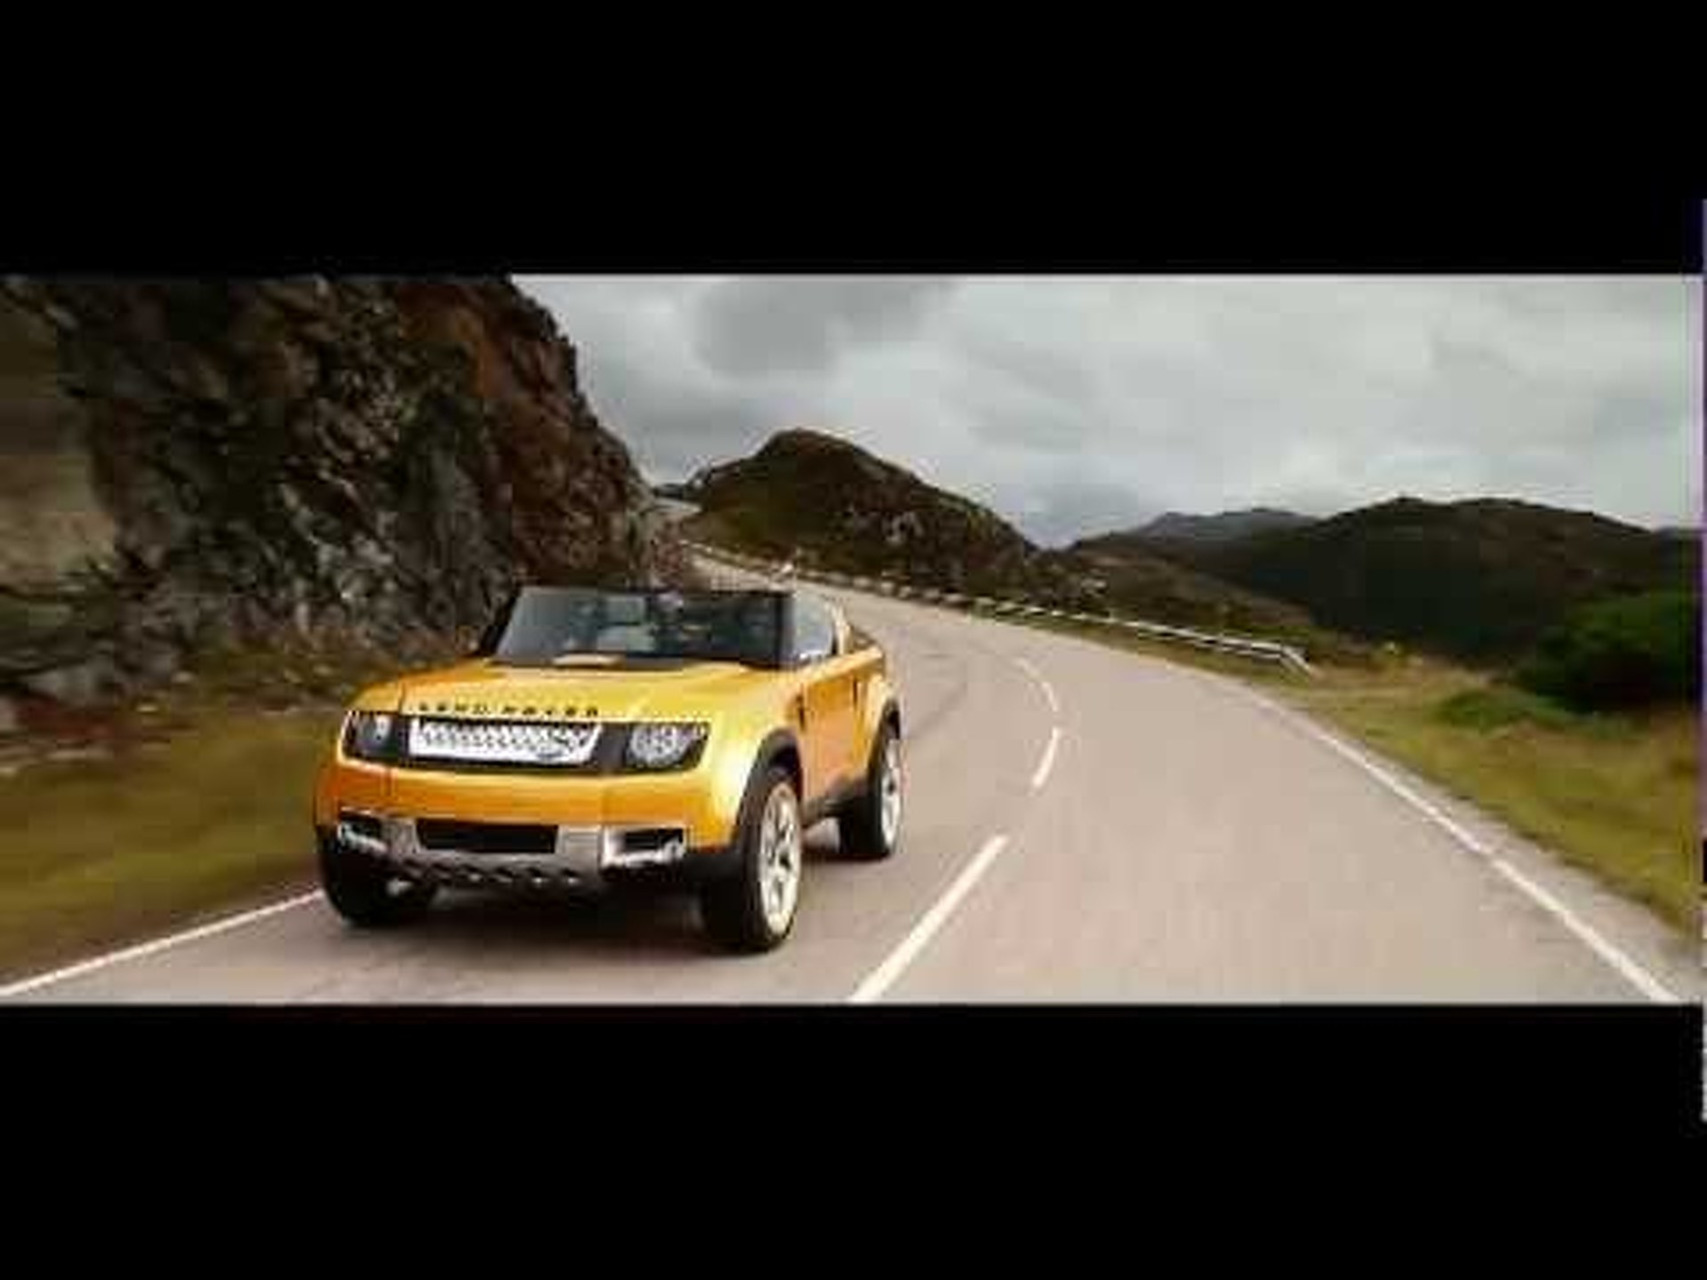 2011 Land Rover DC100 Sport Concept Driving